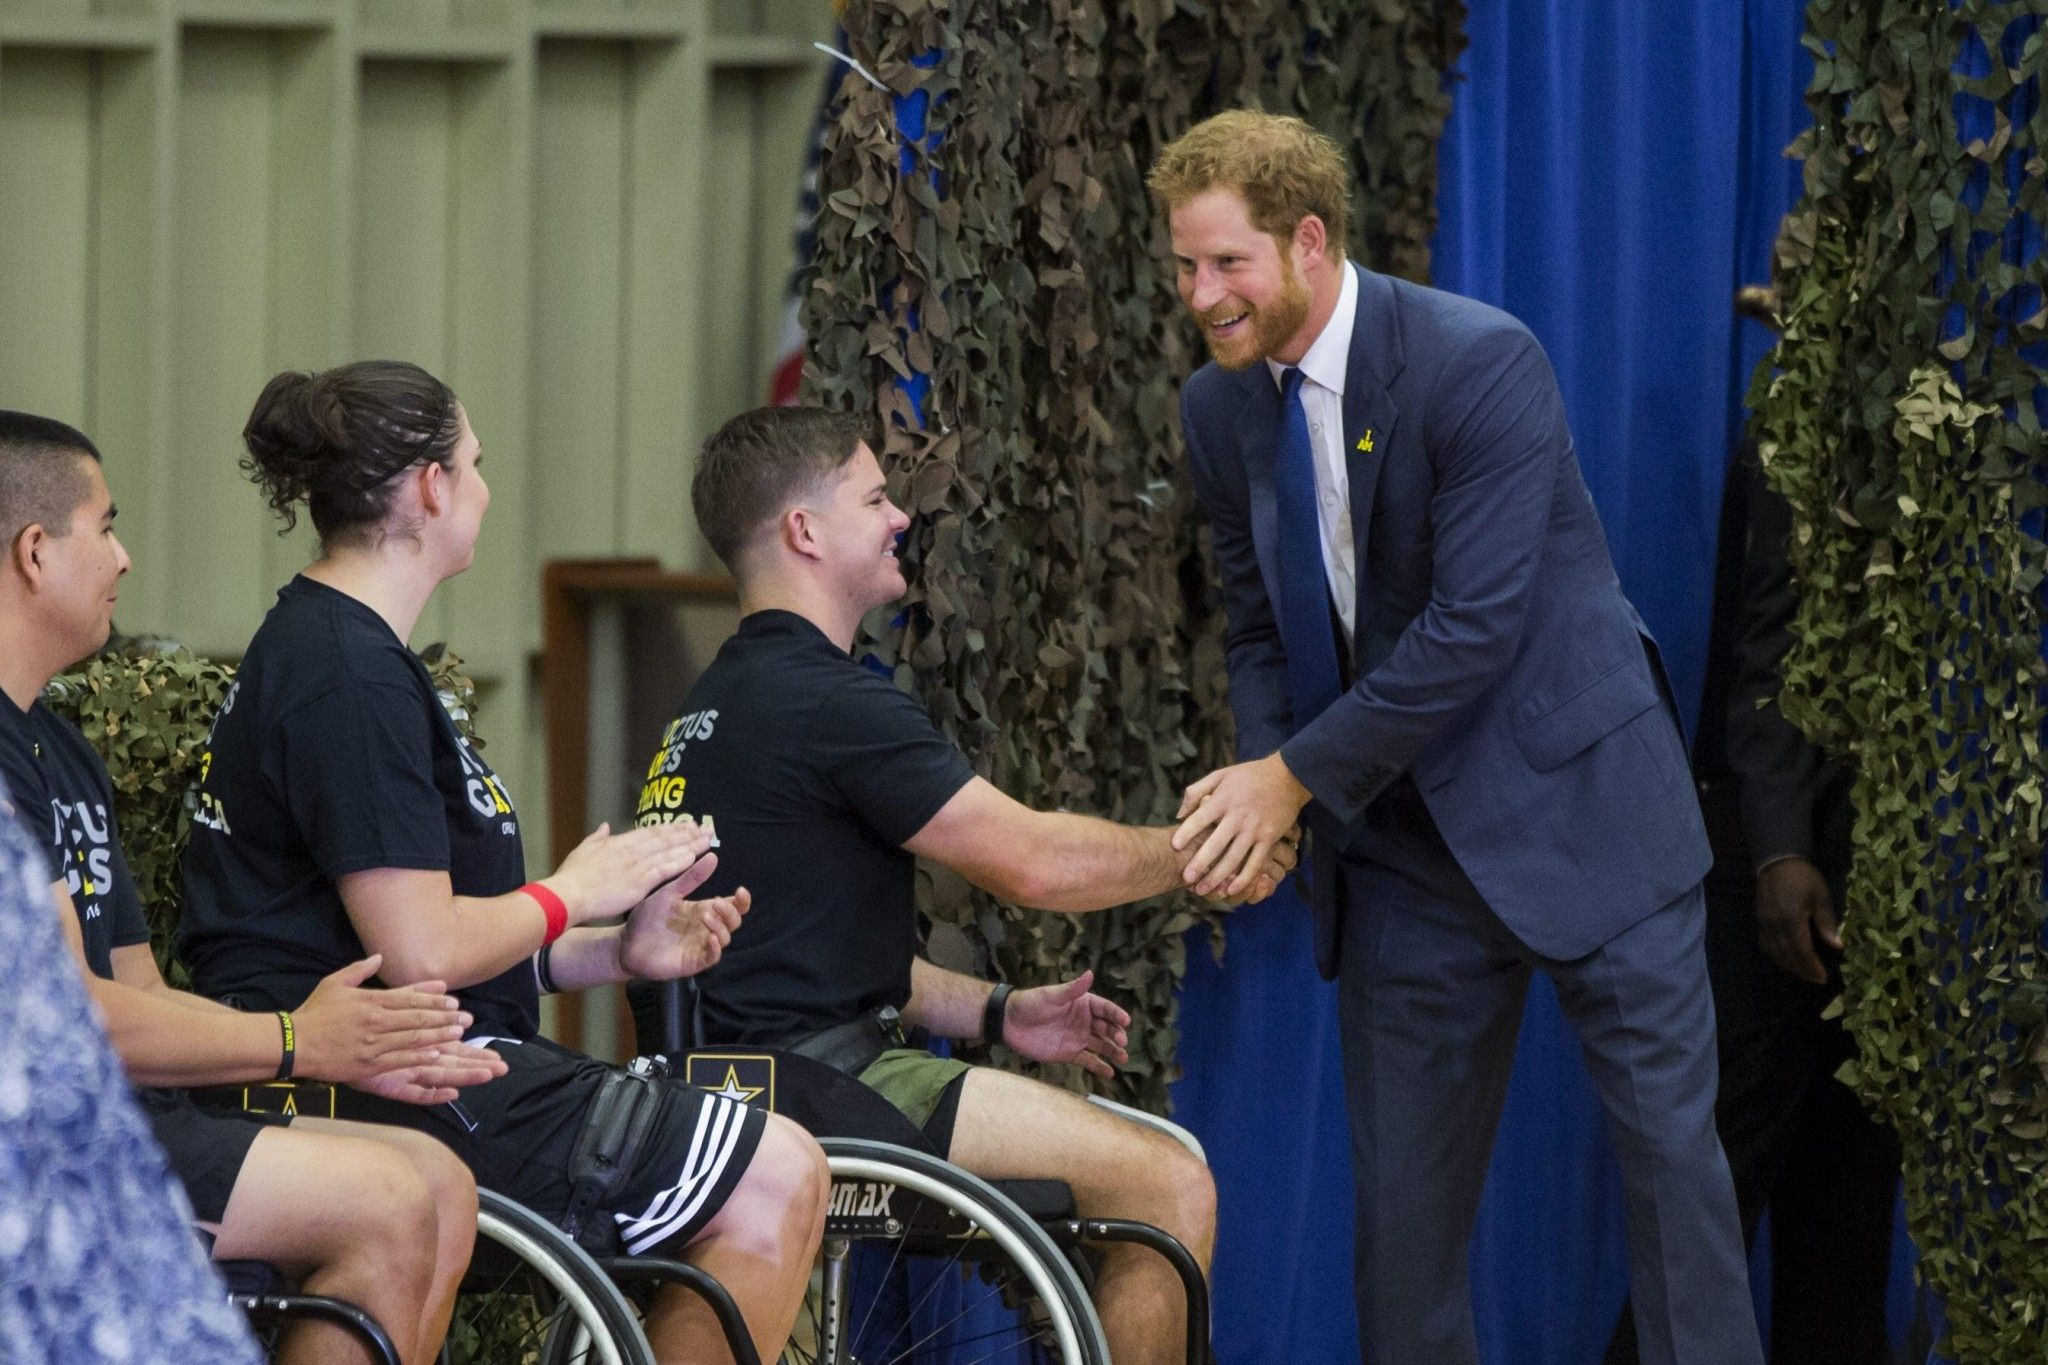 Prince Harry promoting Invictus  games in DC